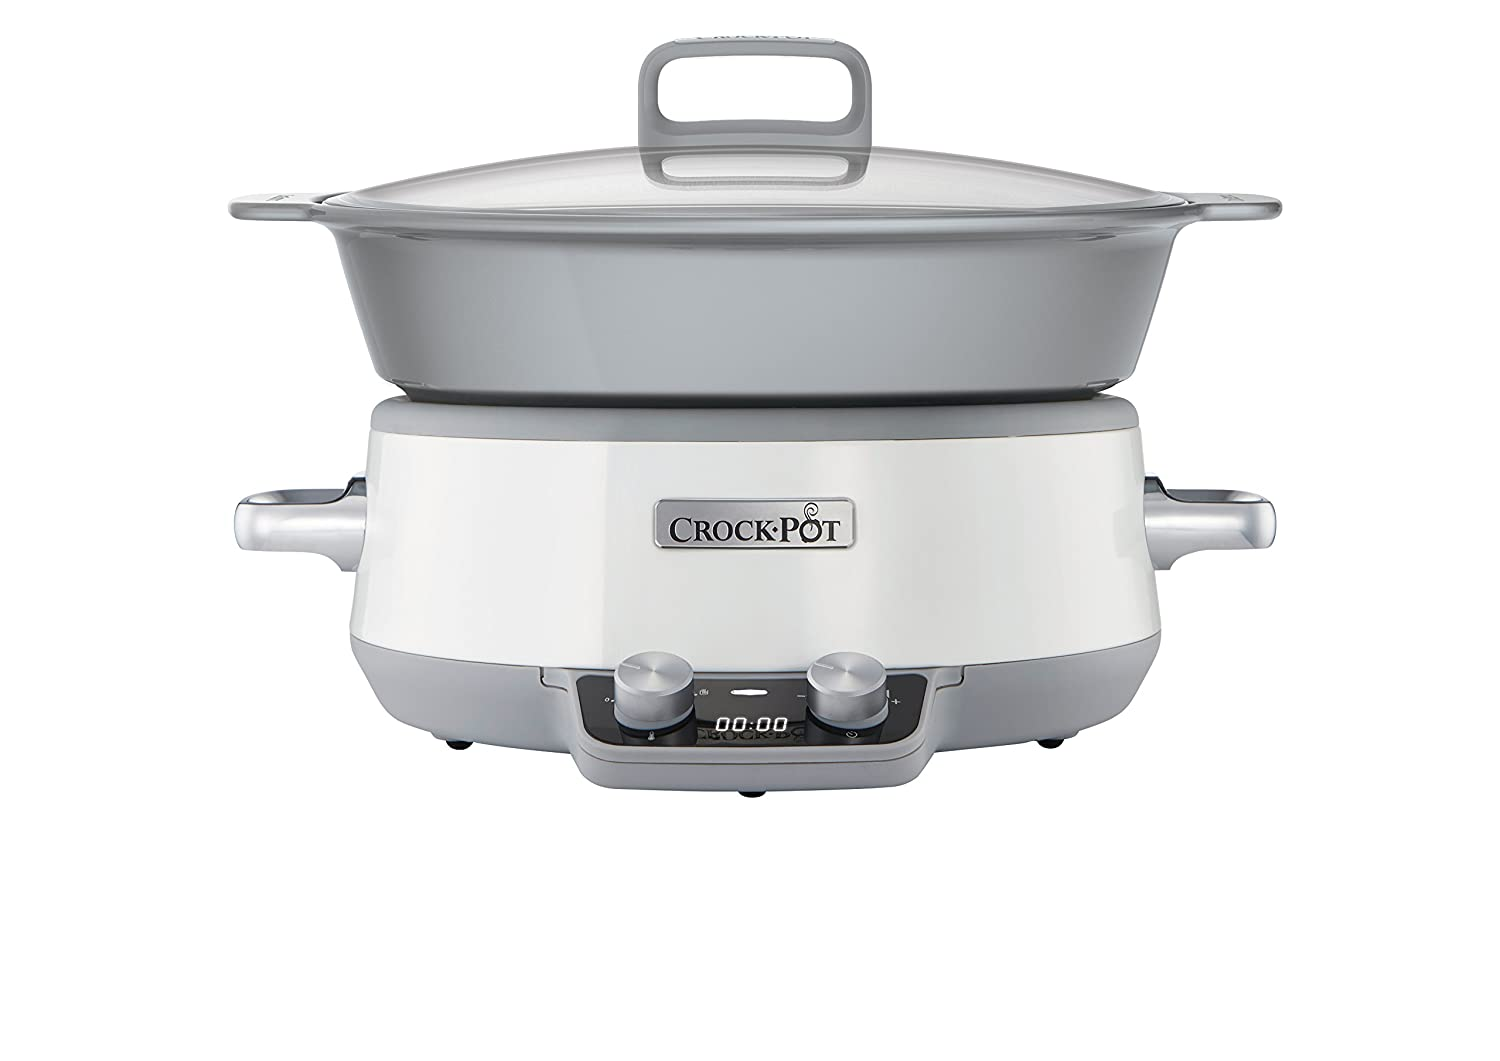 Crock Pot Duraceramic CSCX Olla de cocción lenta digital L color blanco